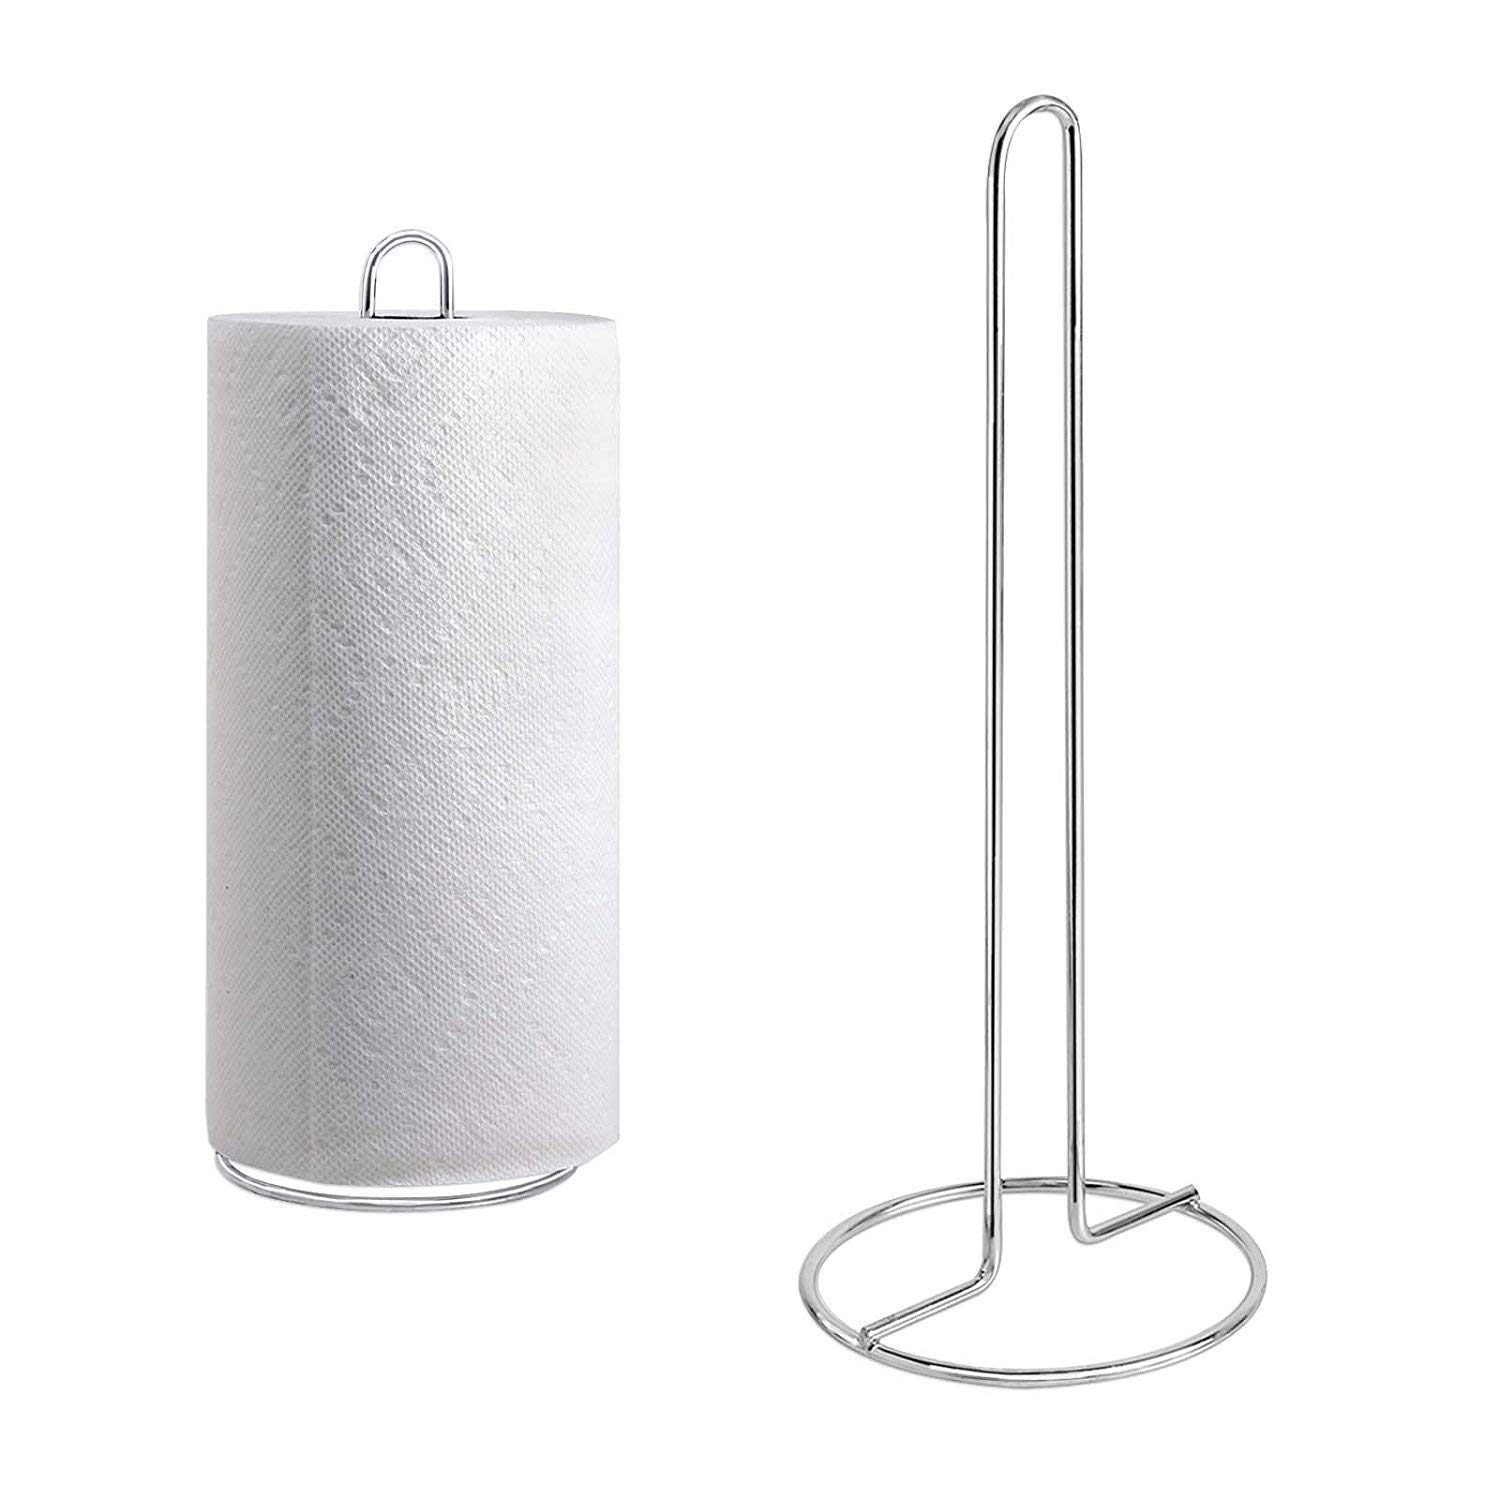 yongkang factory Paper Towel Holder, Tissue Bracket Dispenser, Kitchen Roll Paper Holder Stand